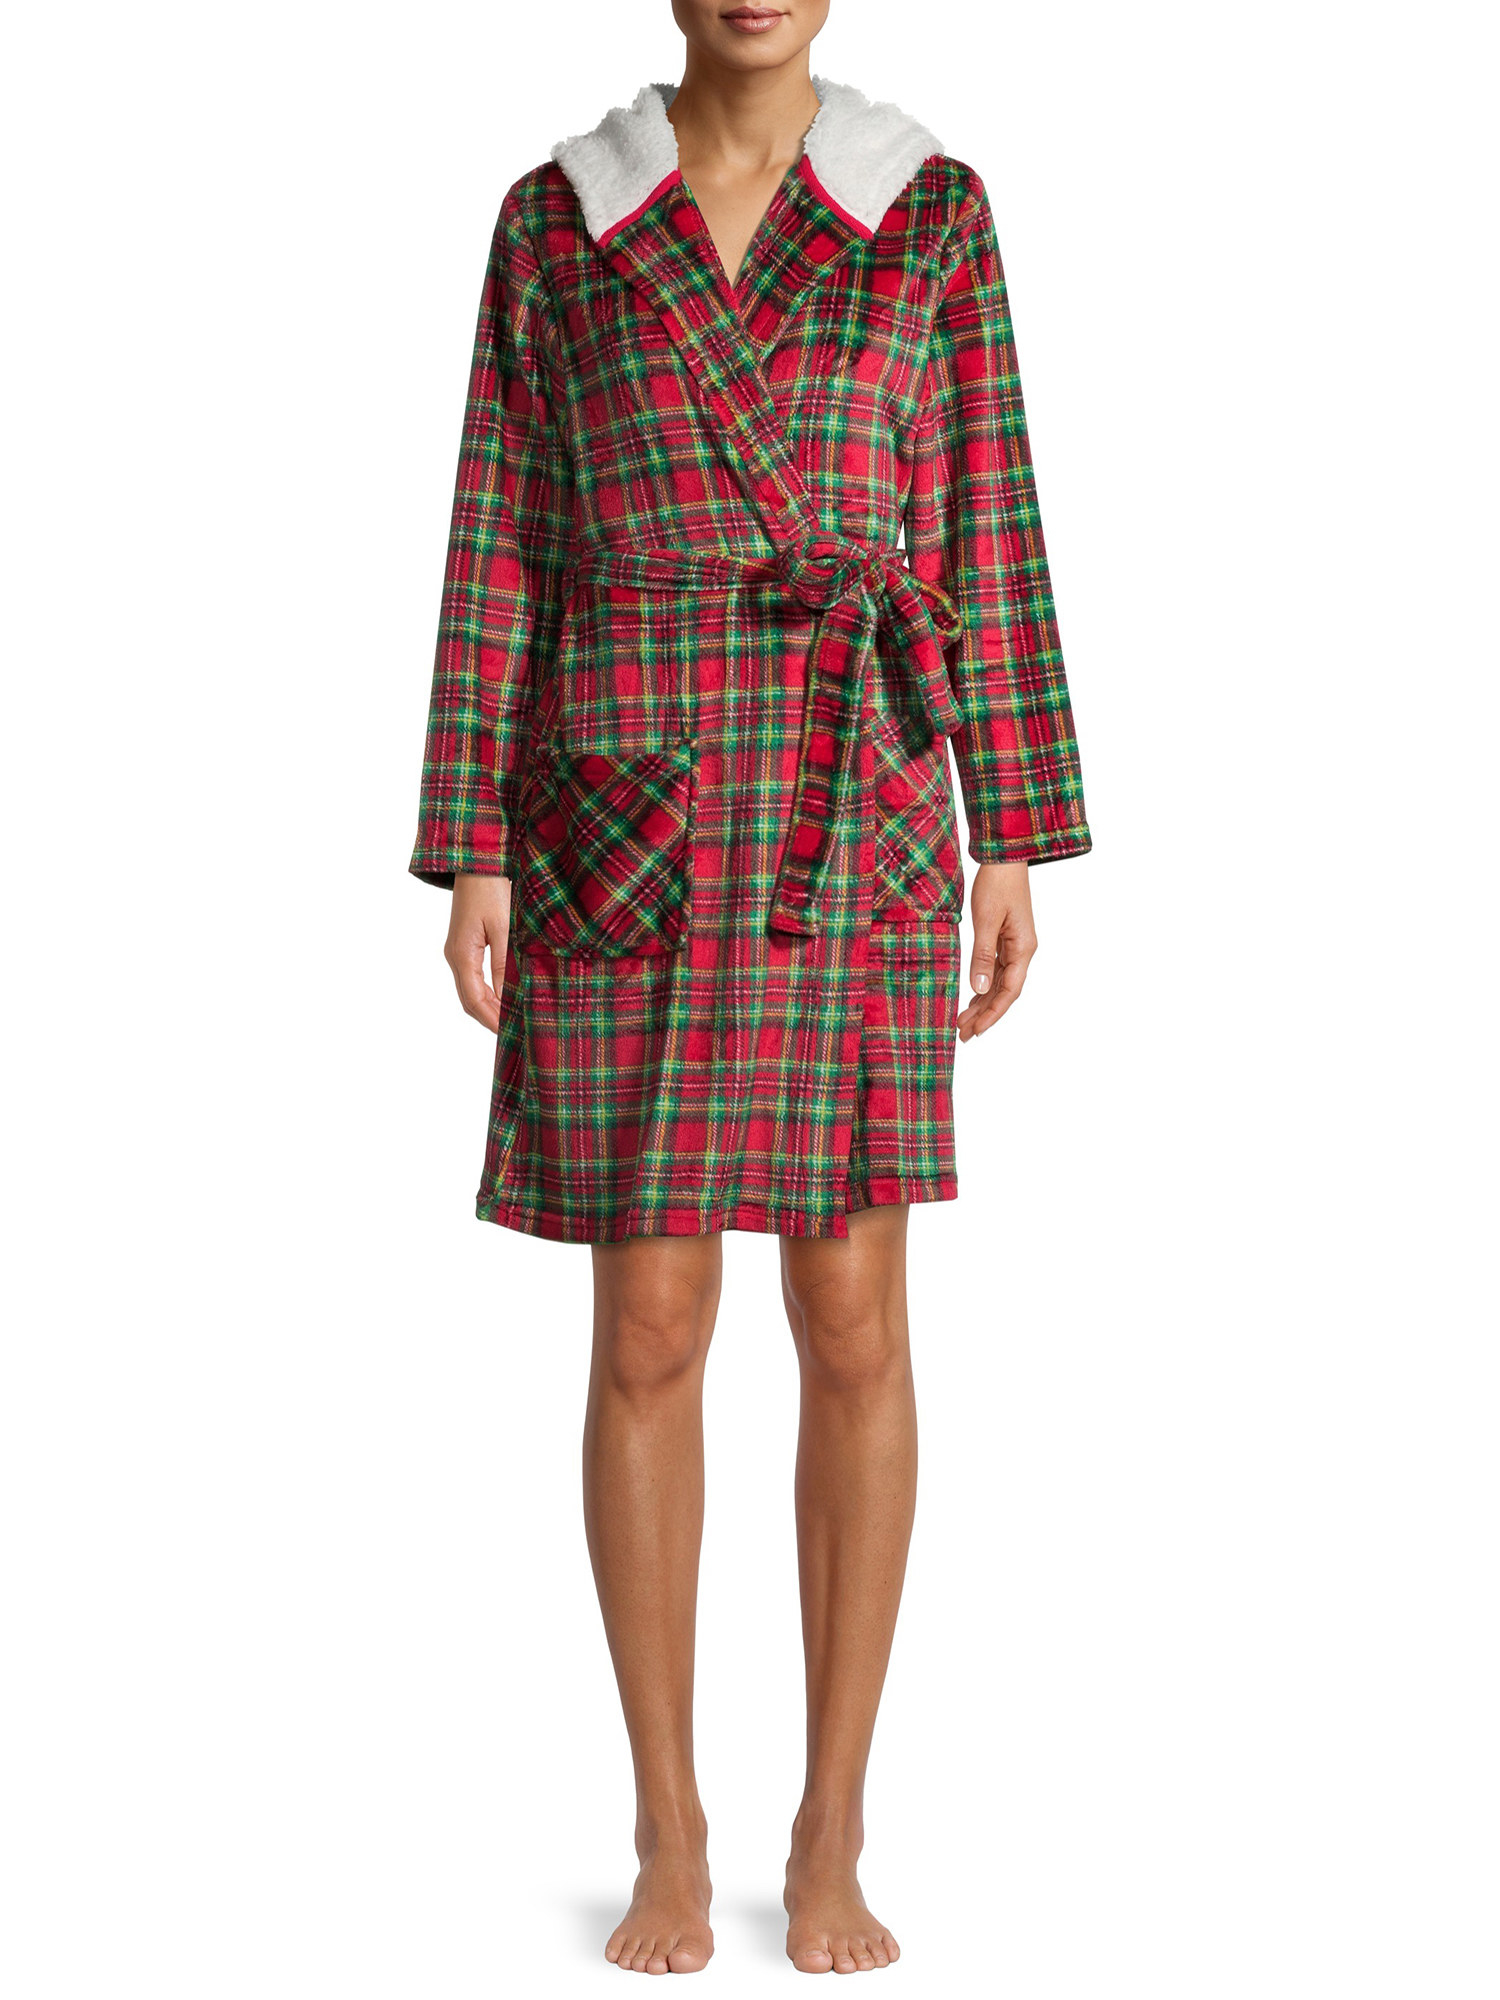 A model wearing the red and green plaid hooded robe